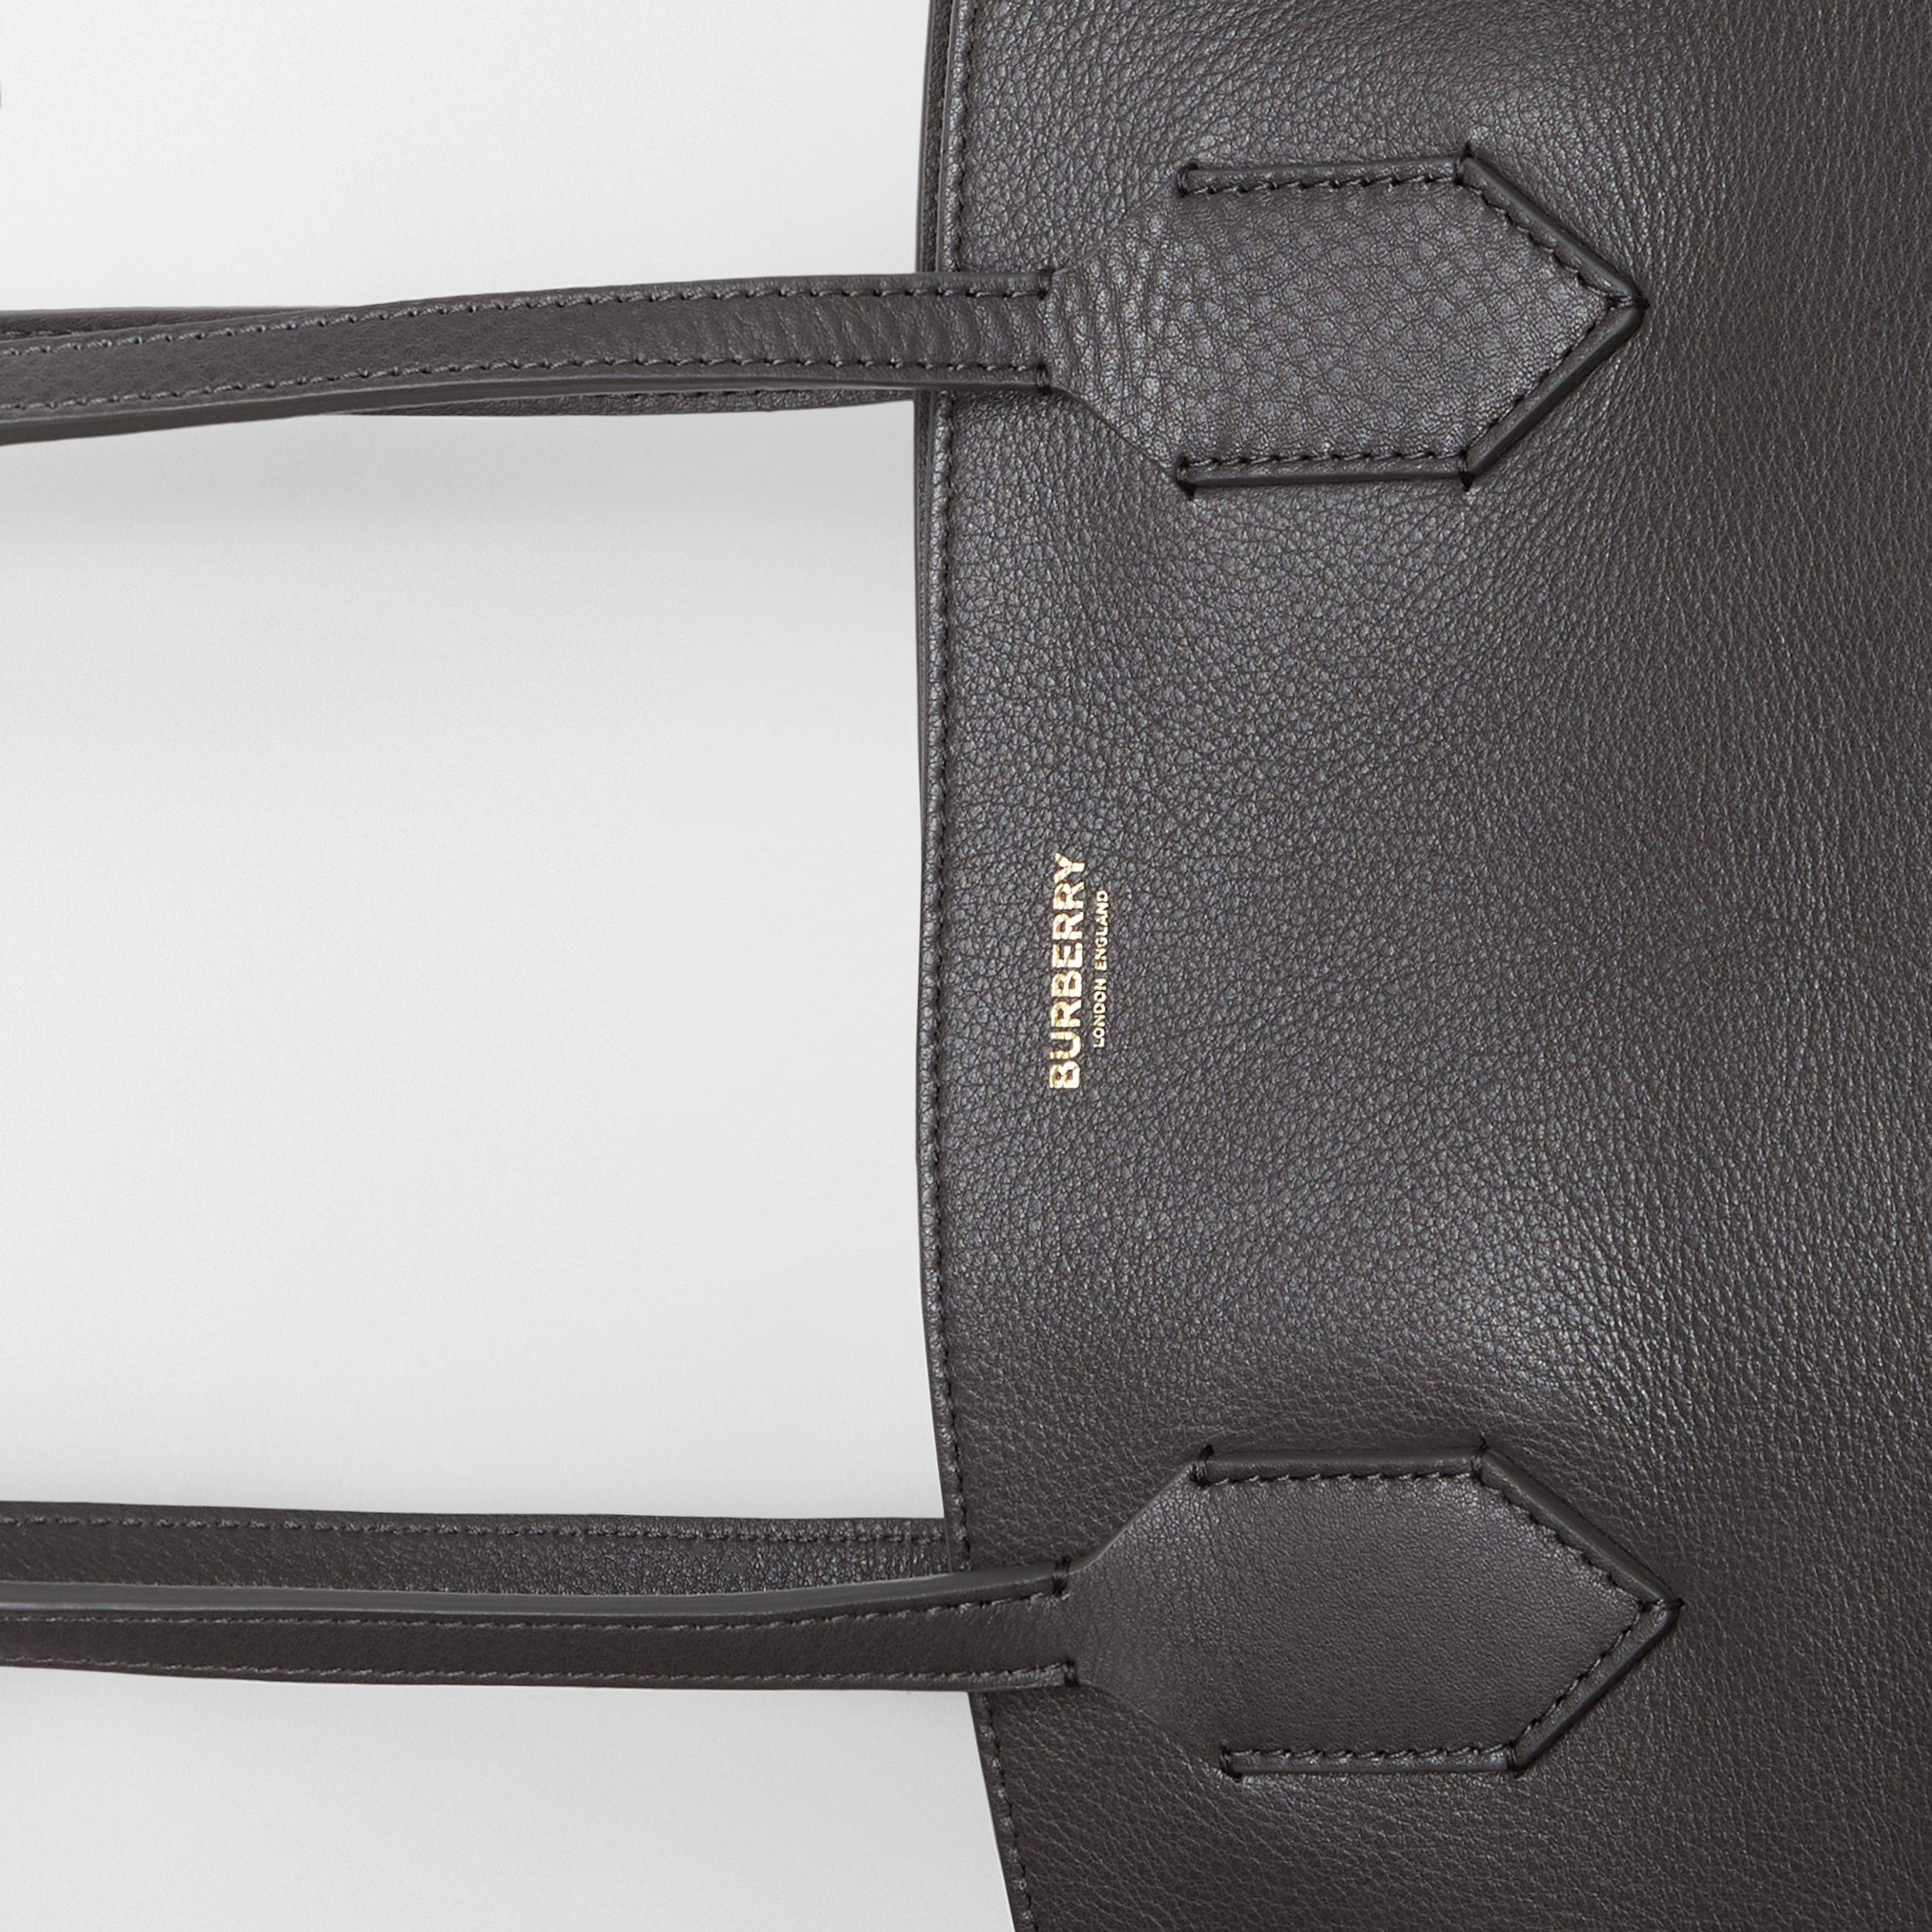 Medium Leather Society Tote in Anthracite - Women | Burberry - 2